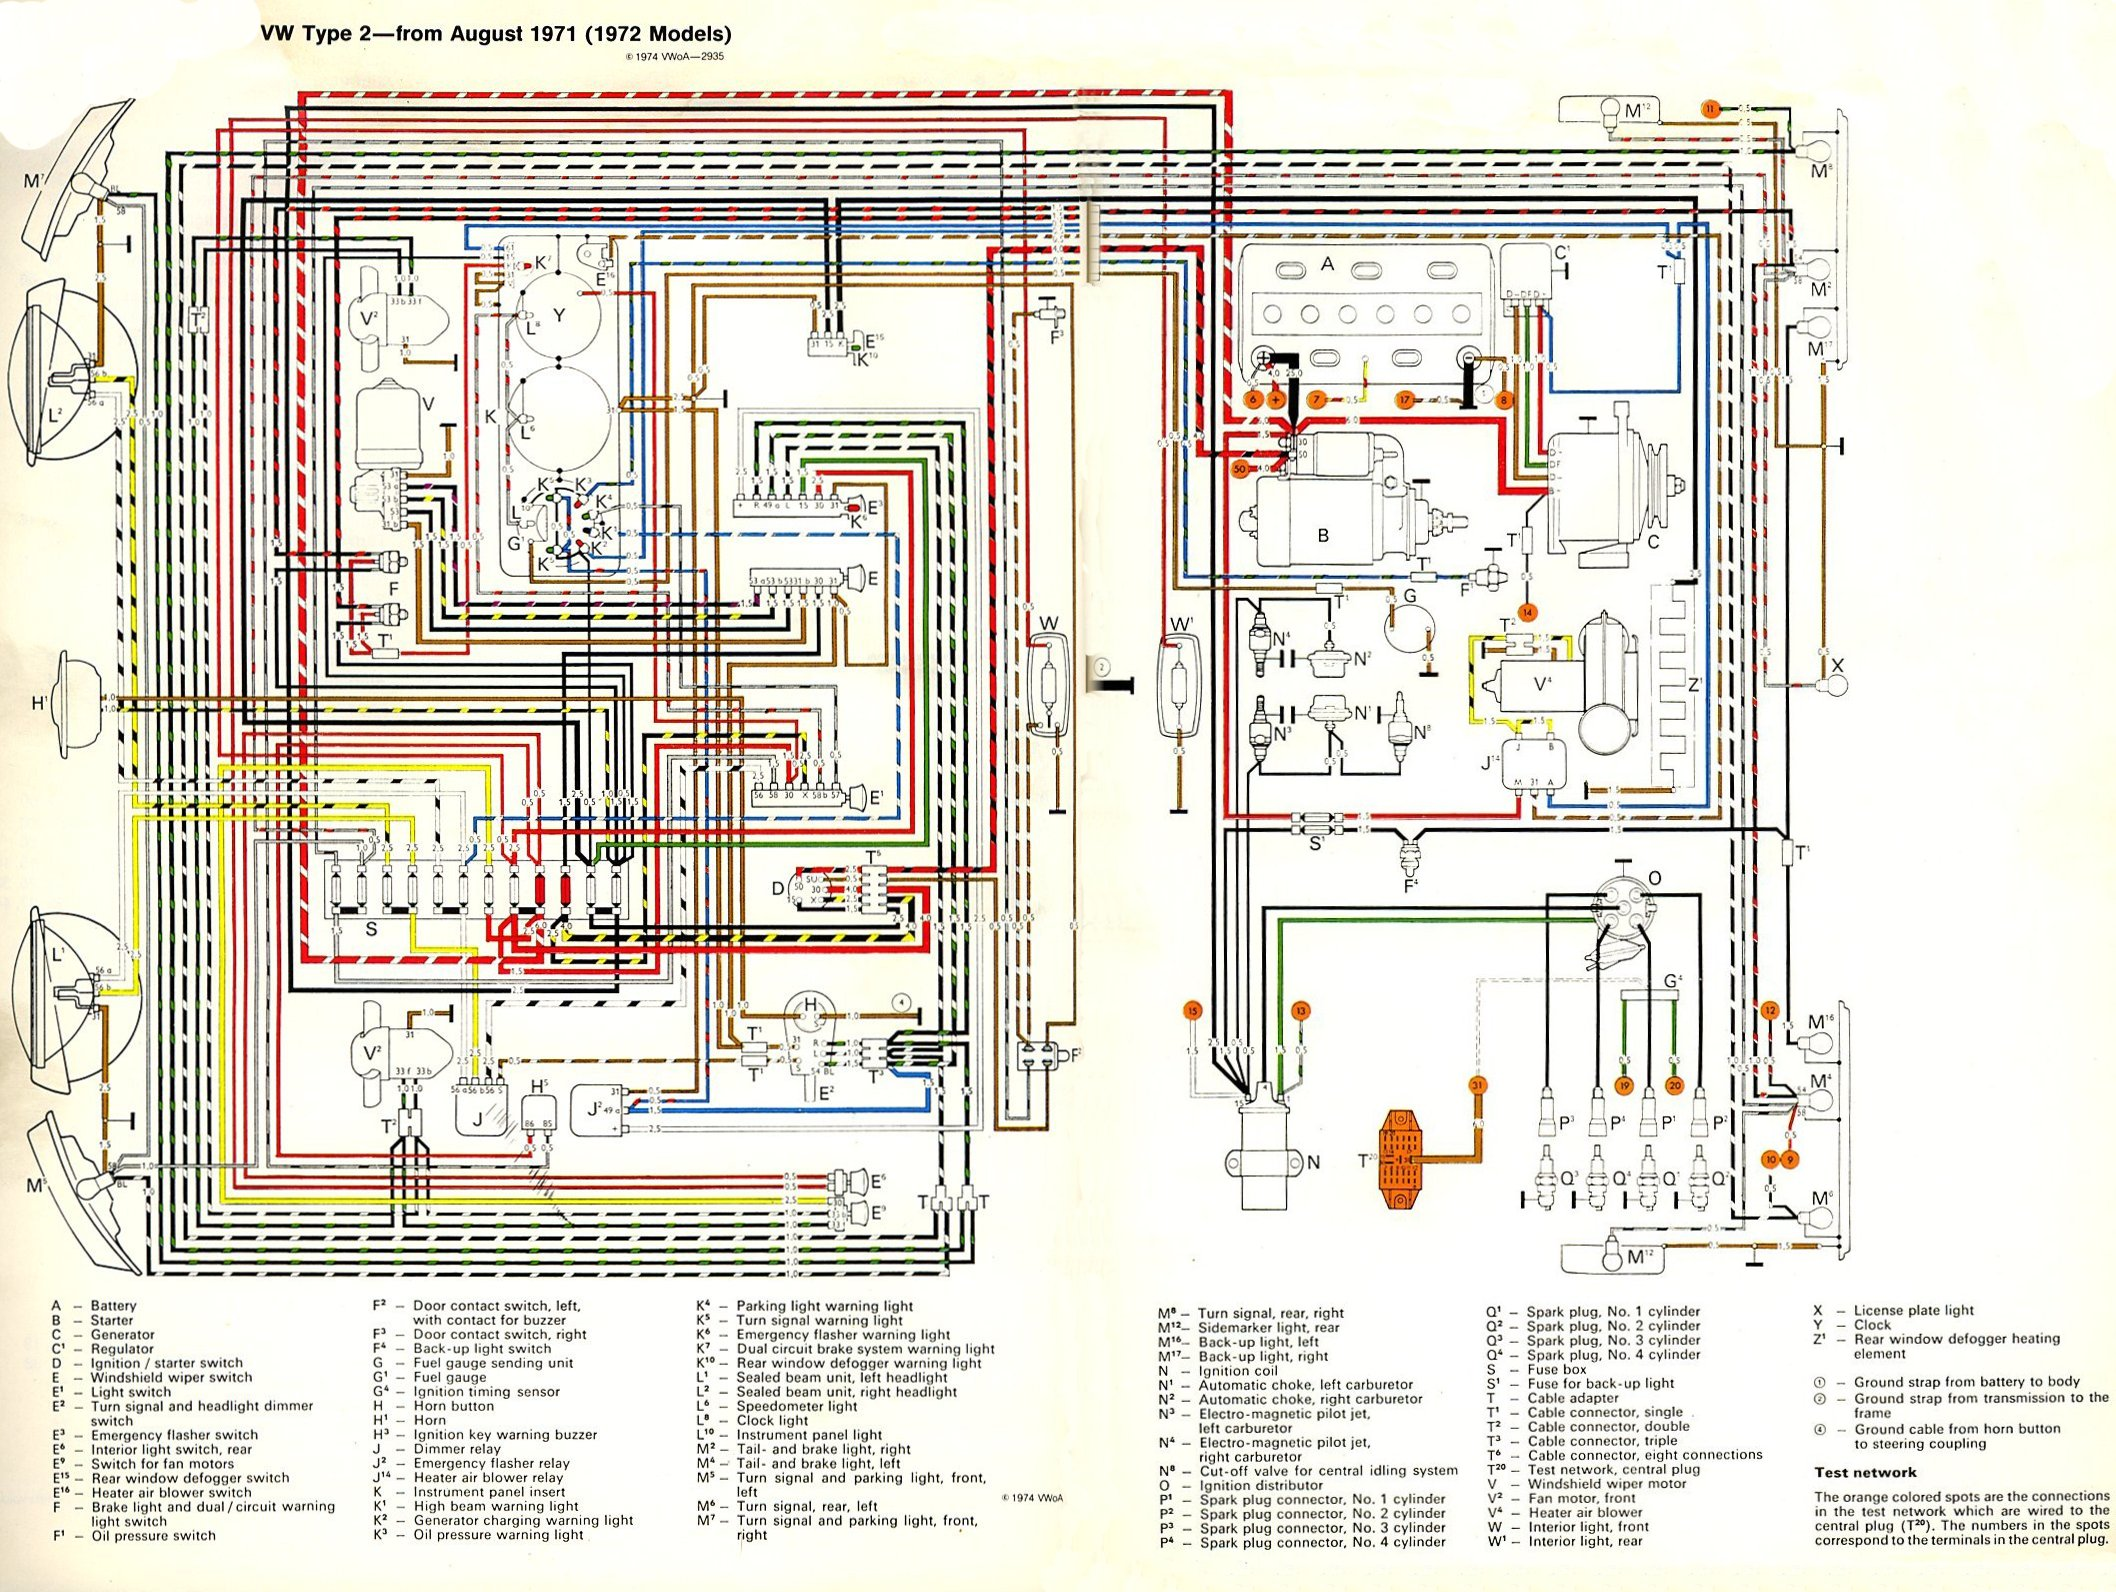 bus_1972_wiring wiring diagram for 1971 vw bus readingrat net 1971 vw bus wiring diagram at aneh.co